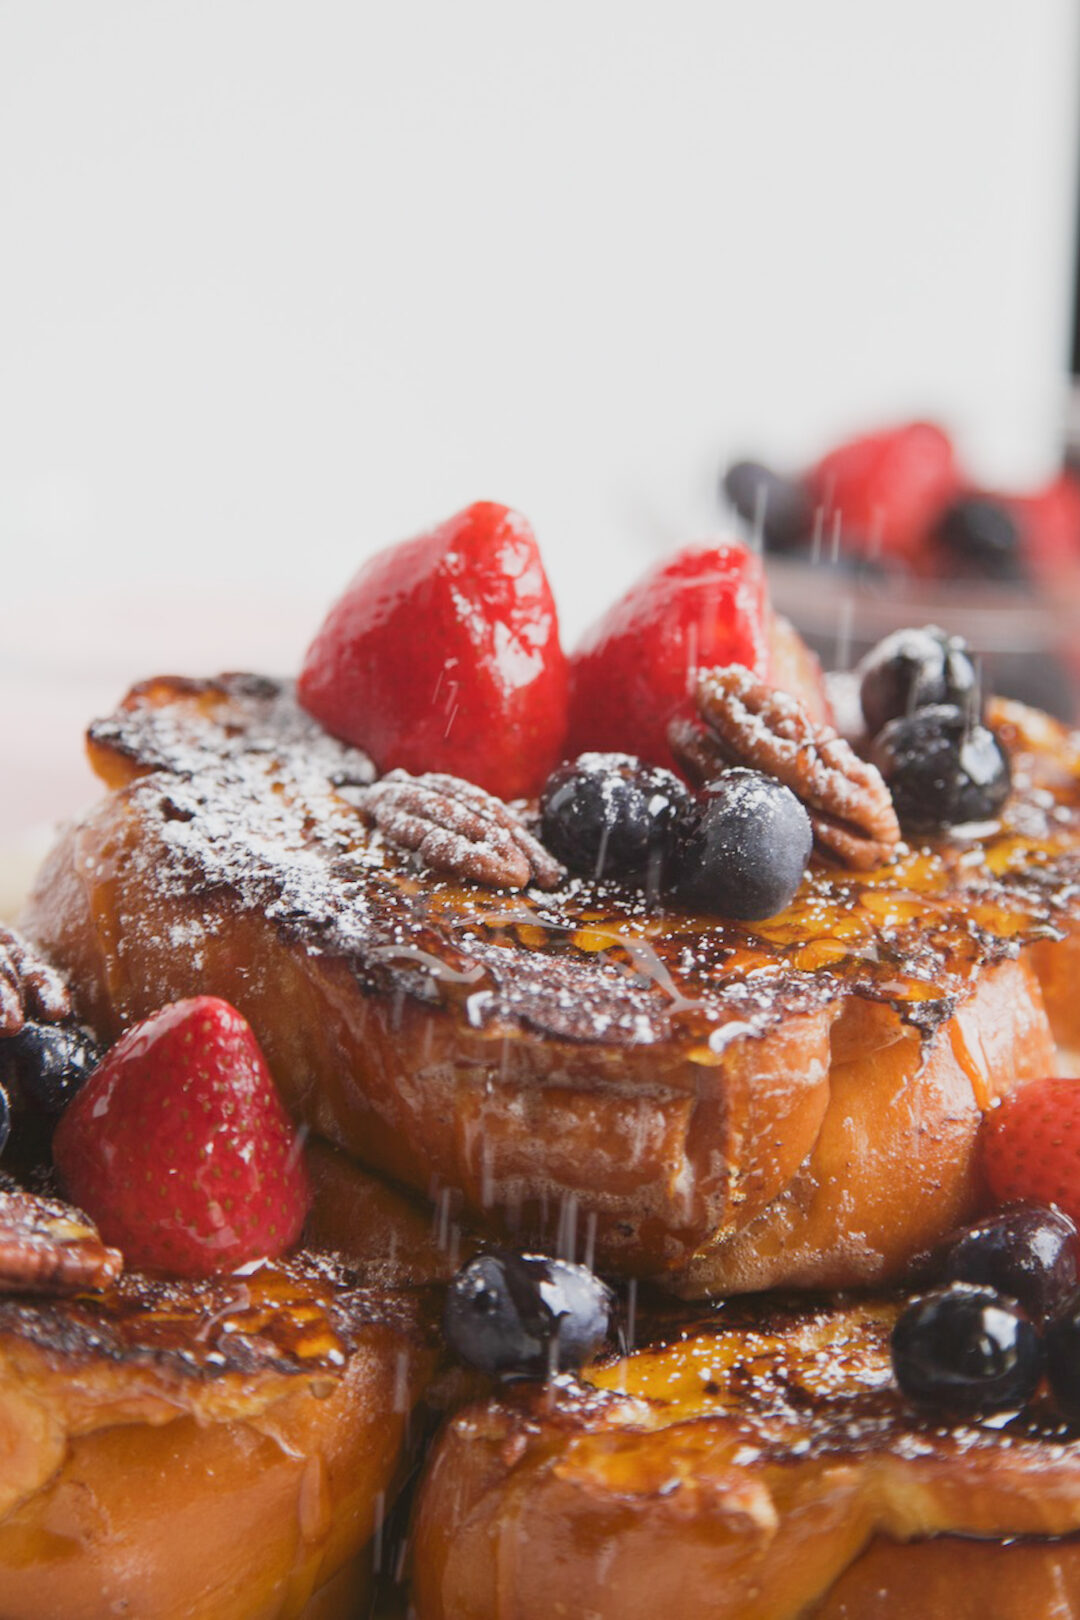 Berries & Cream Stuffed French Toast - MSST